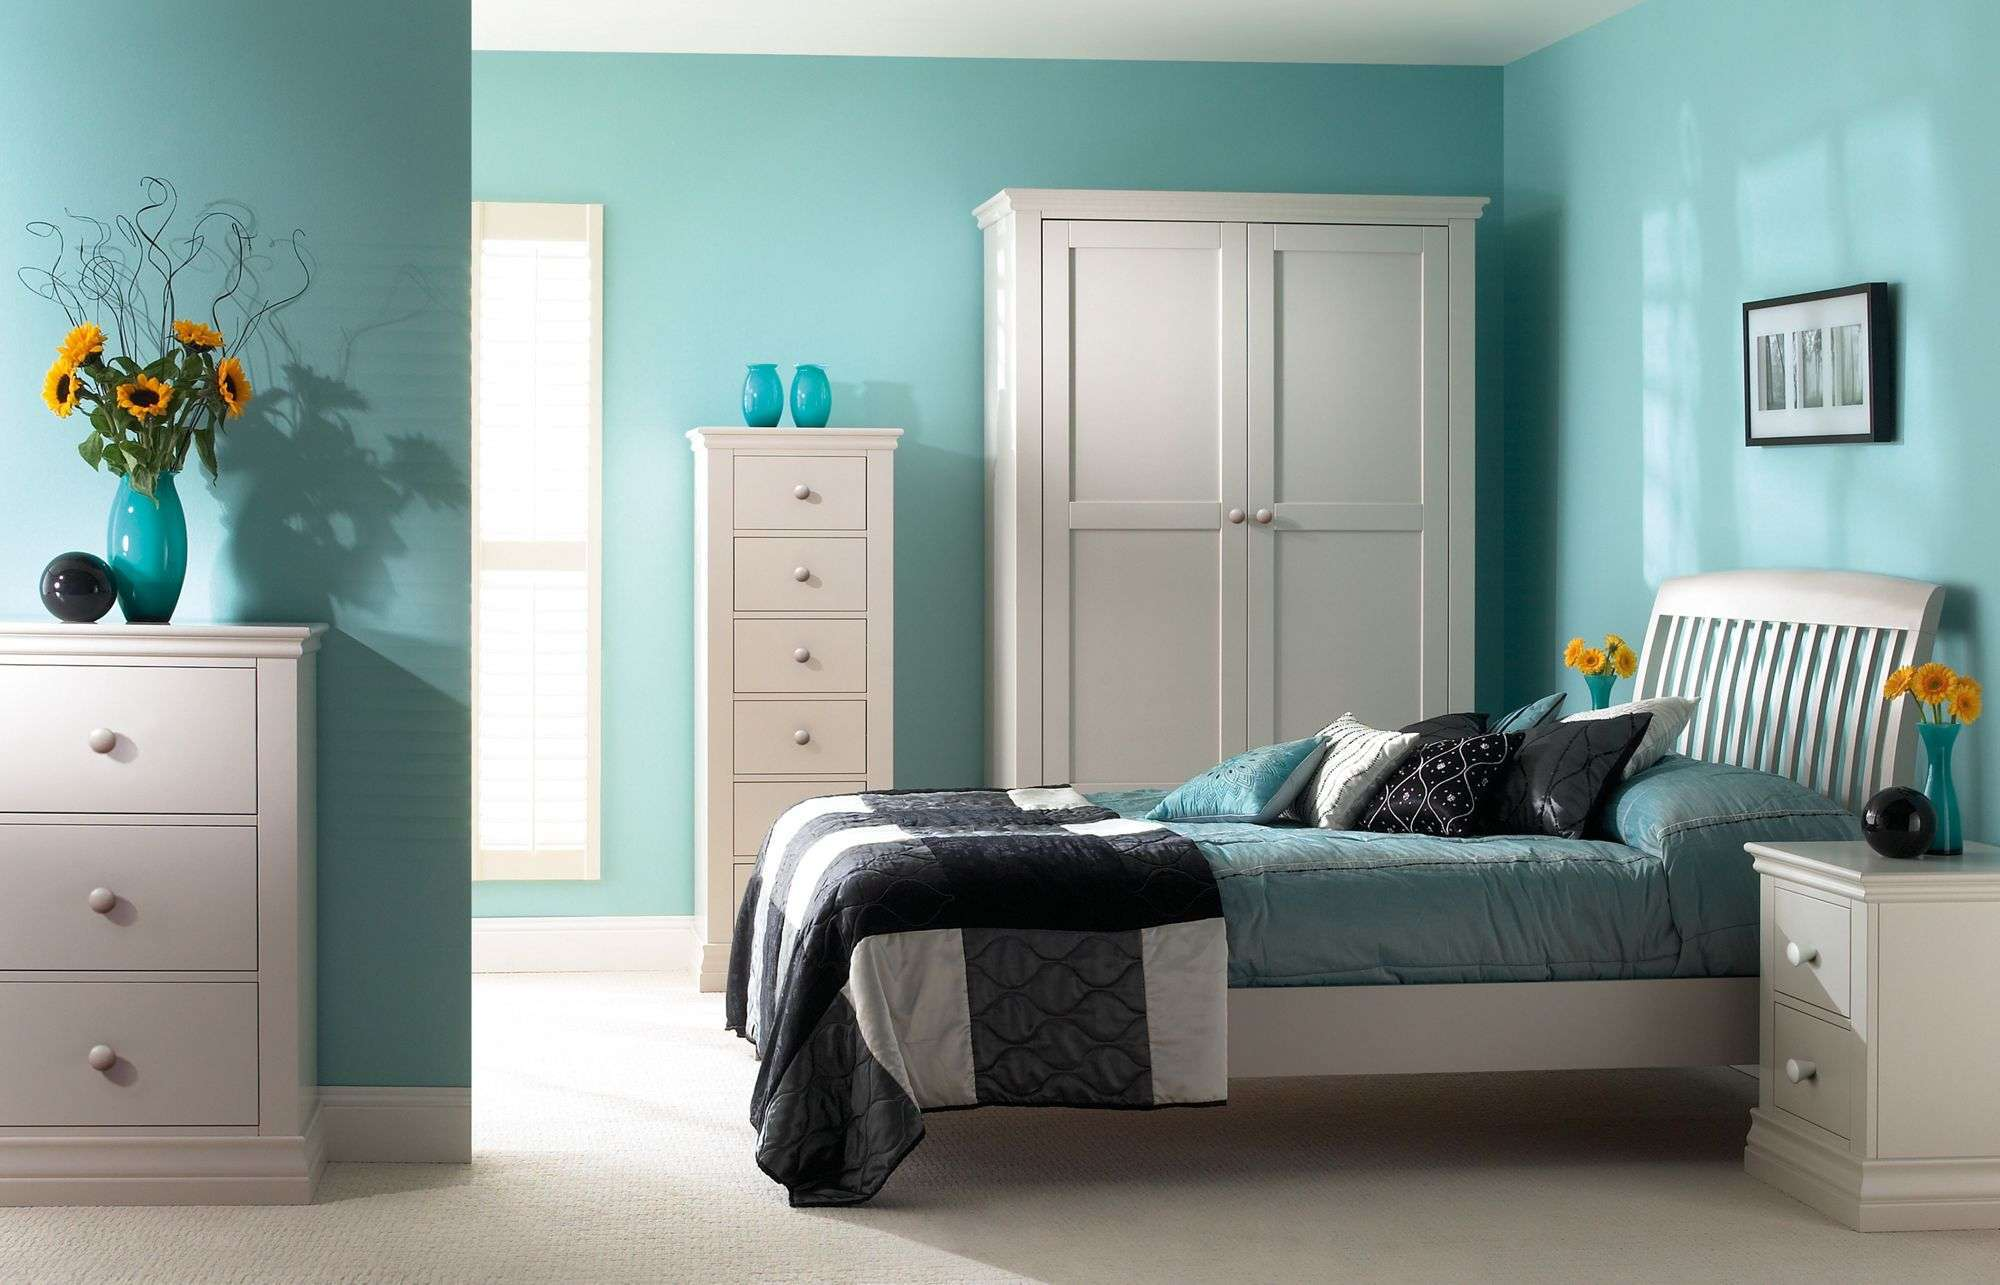 Relaxing Light Blue Bedroom Ideas for Teenage Girls with Black and White Bedding and Flower Decoration